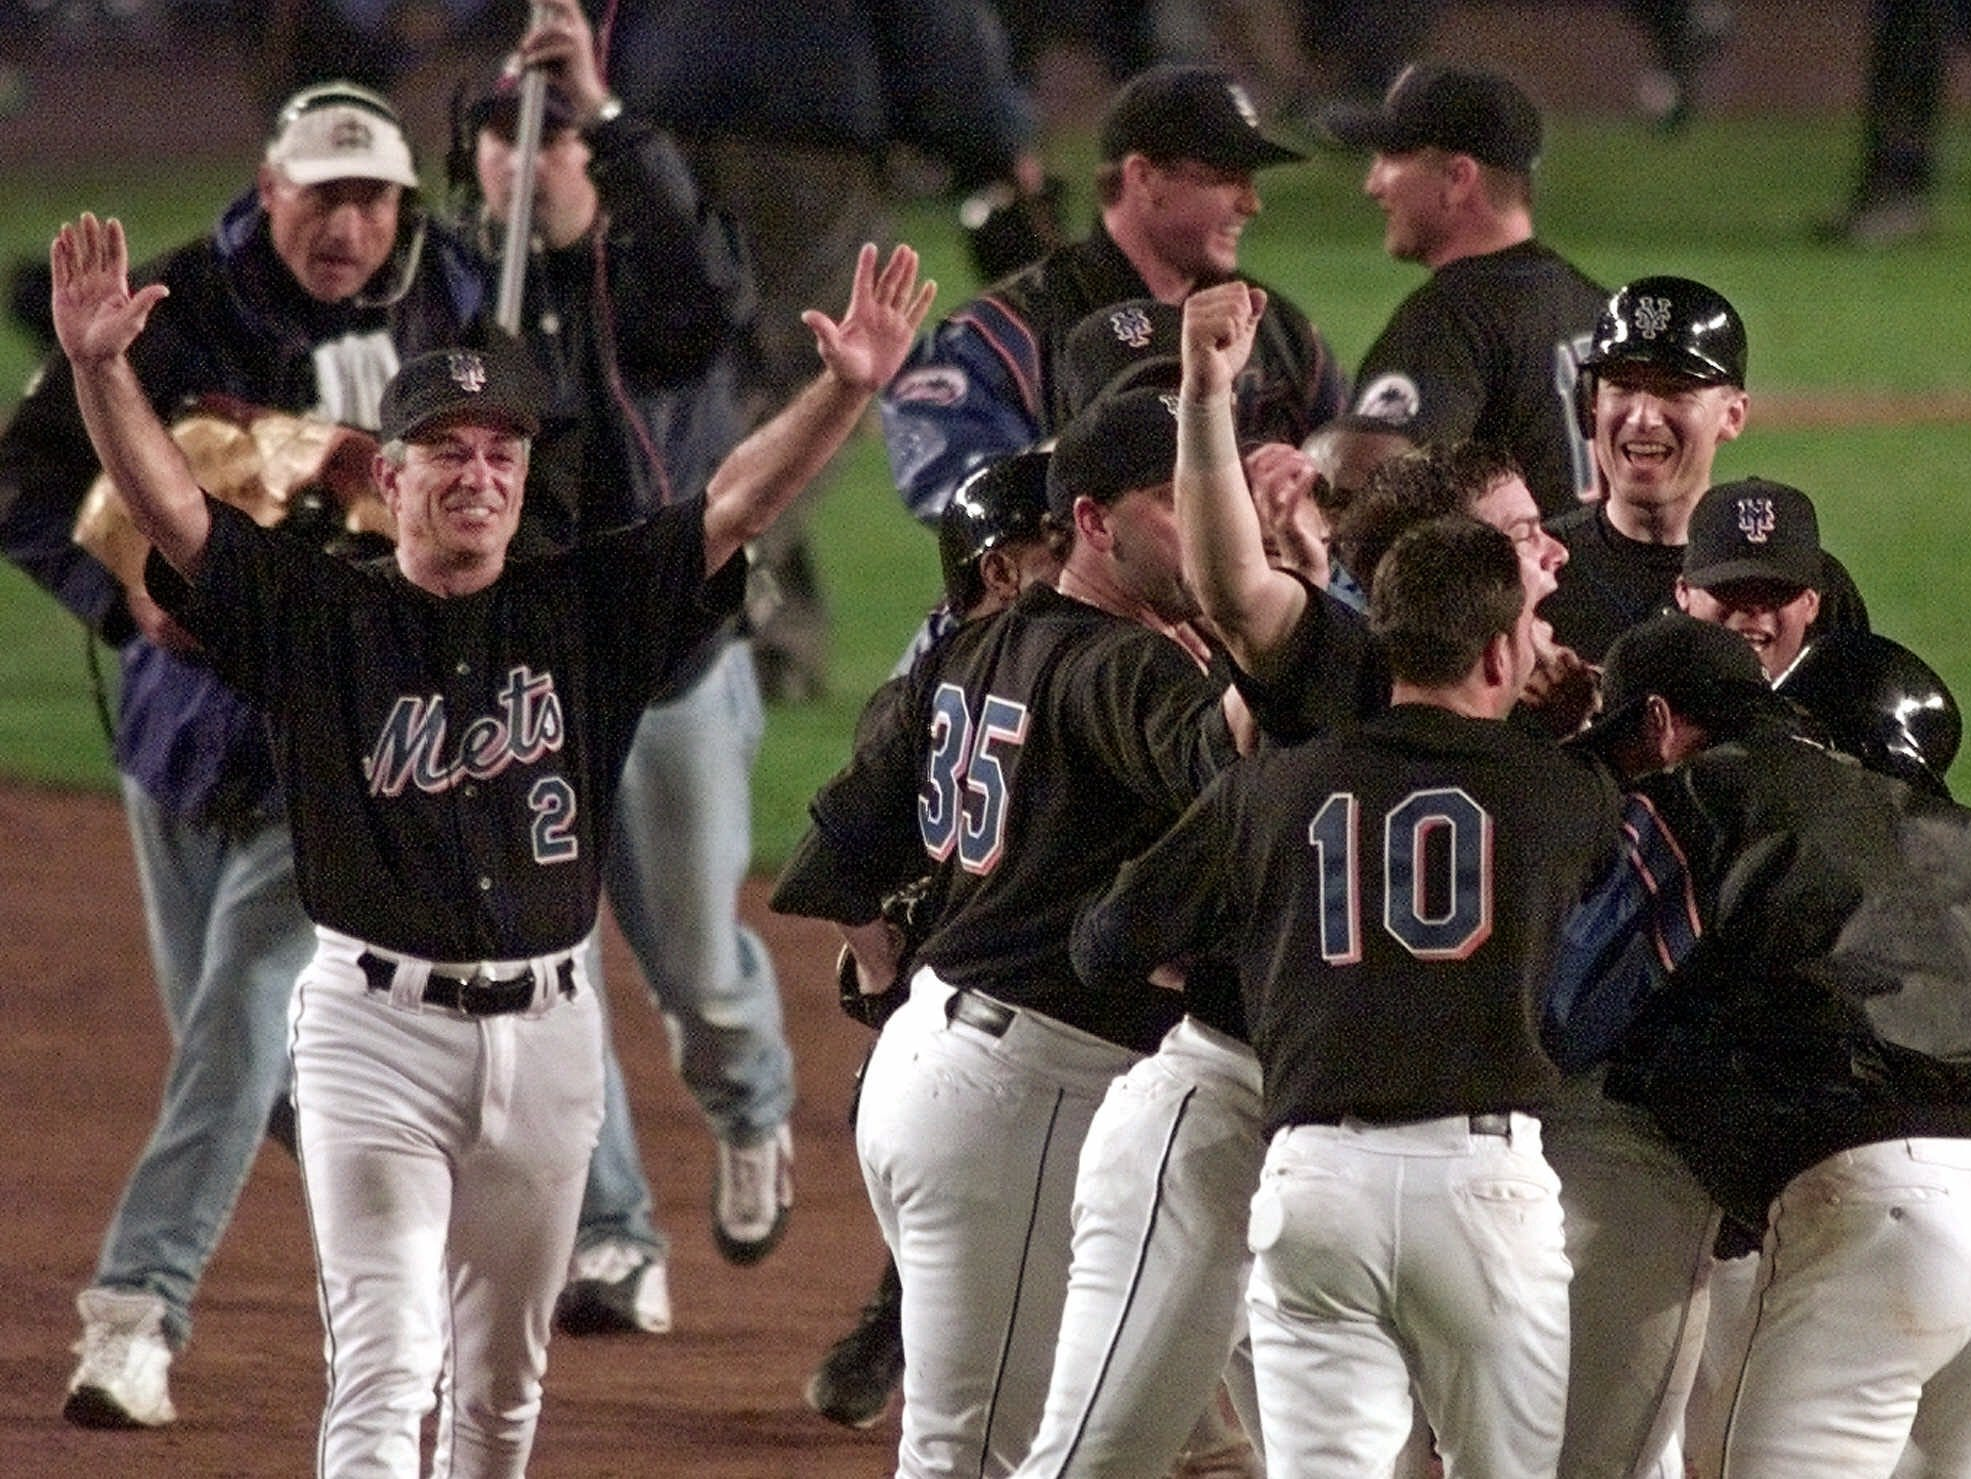 1999 NLCS Game 5: Mets third baseman Robin Ventura hit a walk-off grand slam in the 15th inning against the Braves, but he was mobbed by teammates before reaching second base. Ventura was credited with an RBI single.